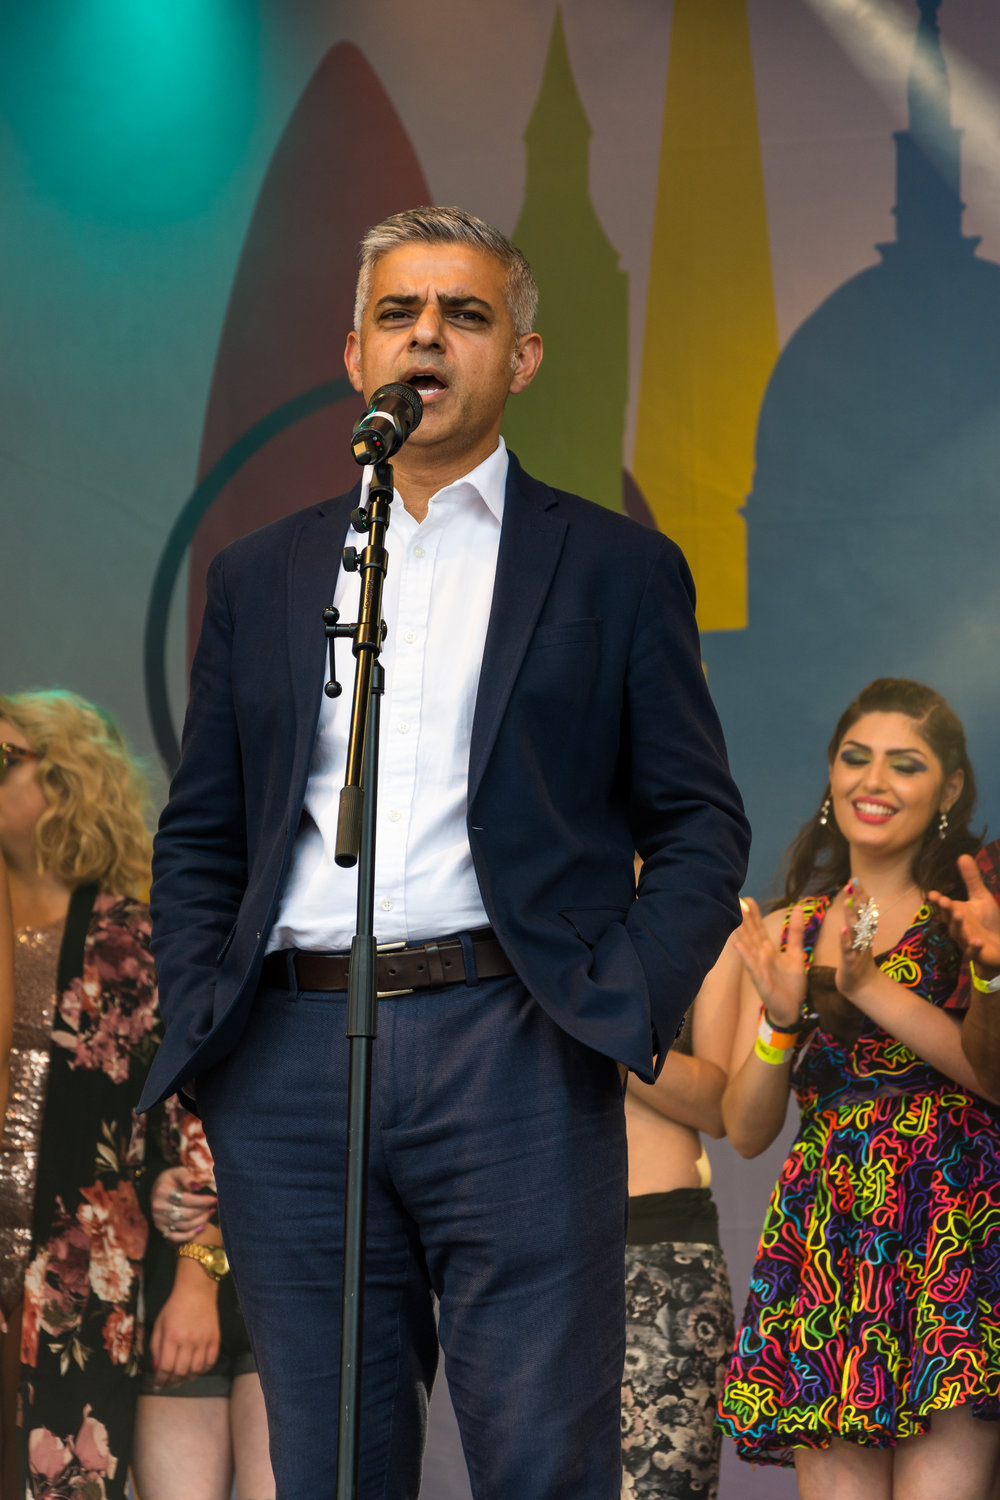 Mayor Of London (Photograph: Dave Nash)